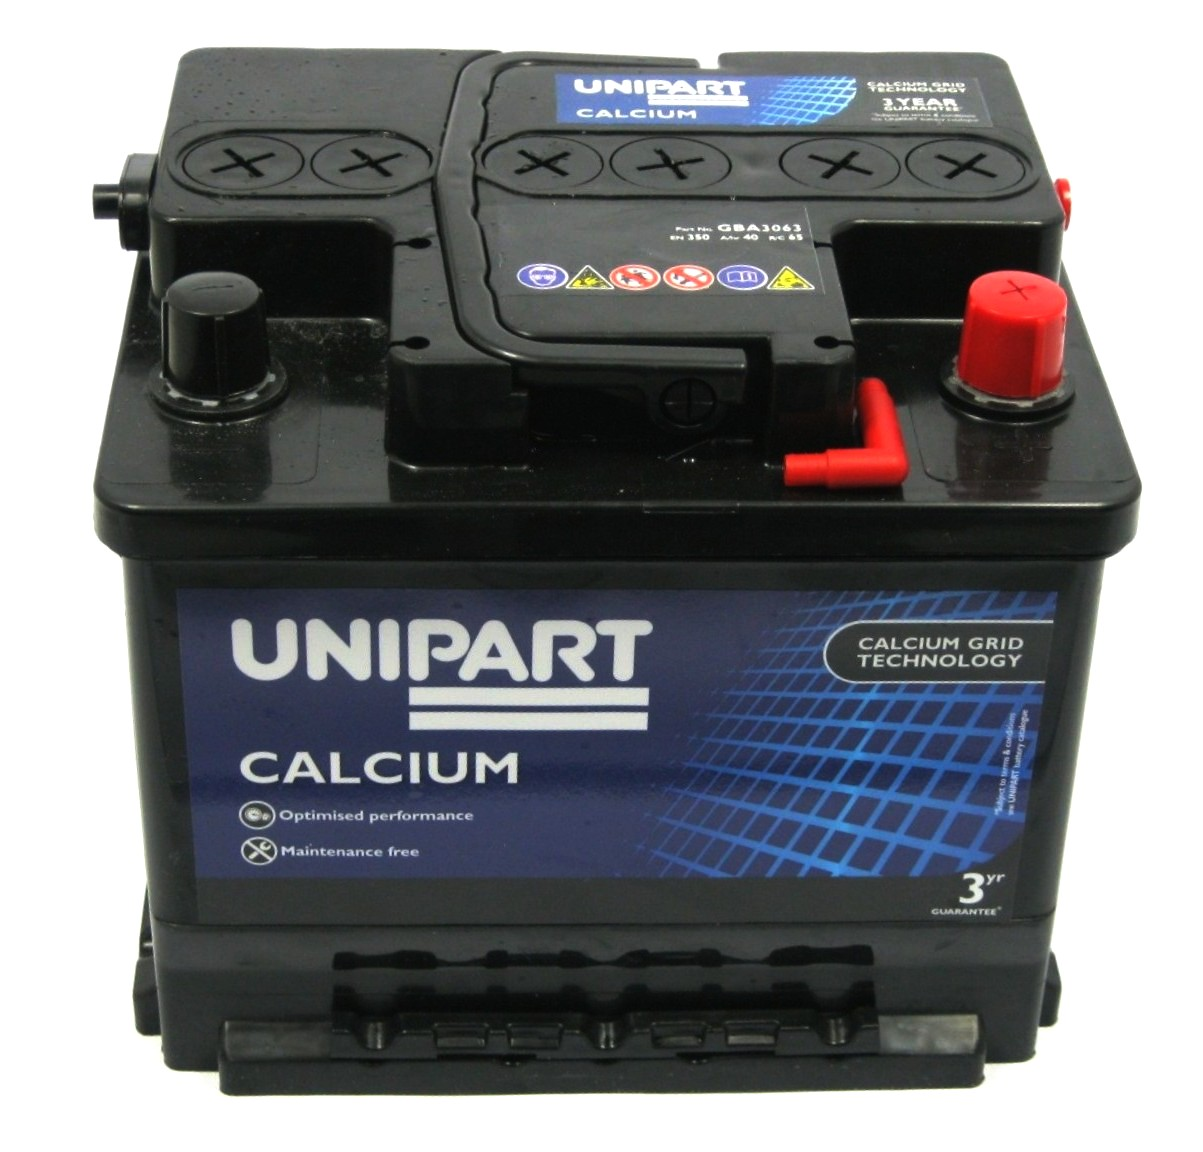 batterie renault megane car battery for renault megane 1 4 16v 09 1996 bpa9009 genuine unipart. Black Bedroom Furniture Sets. Home Design Ideas